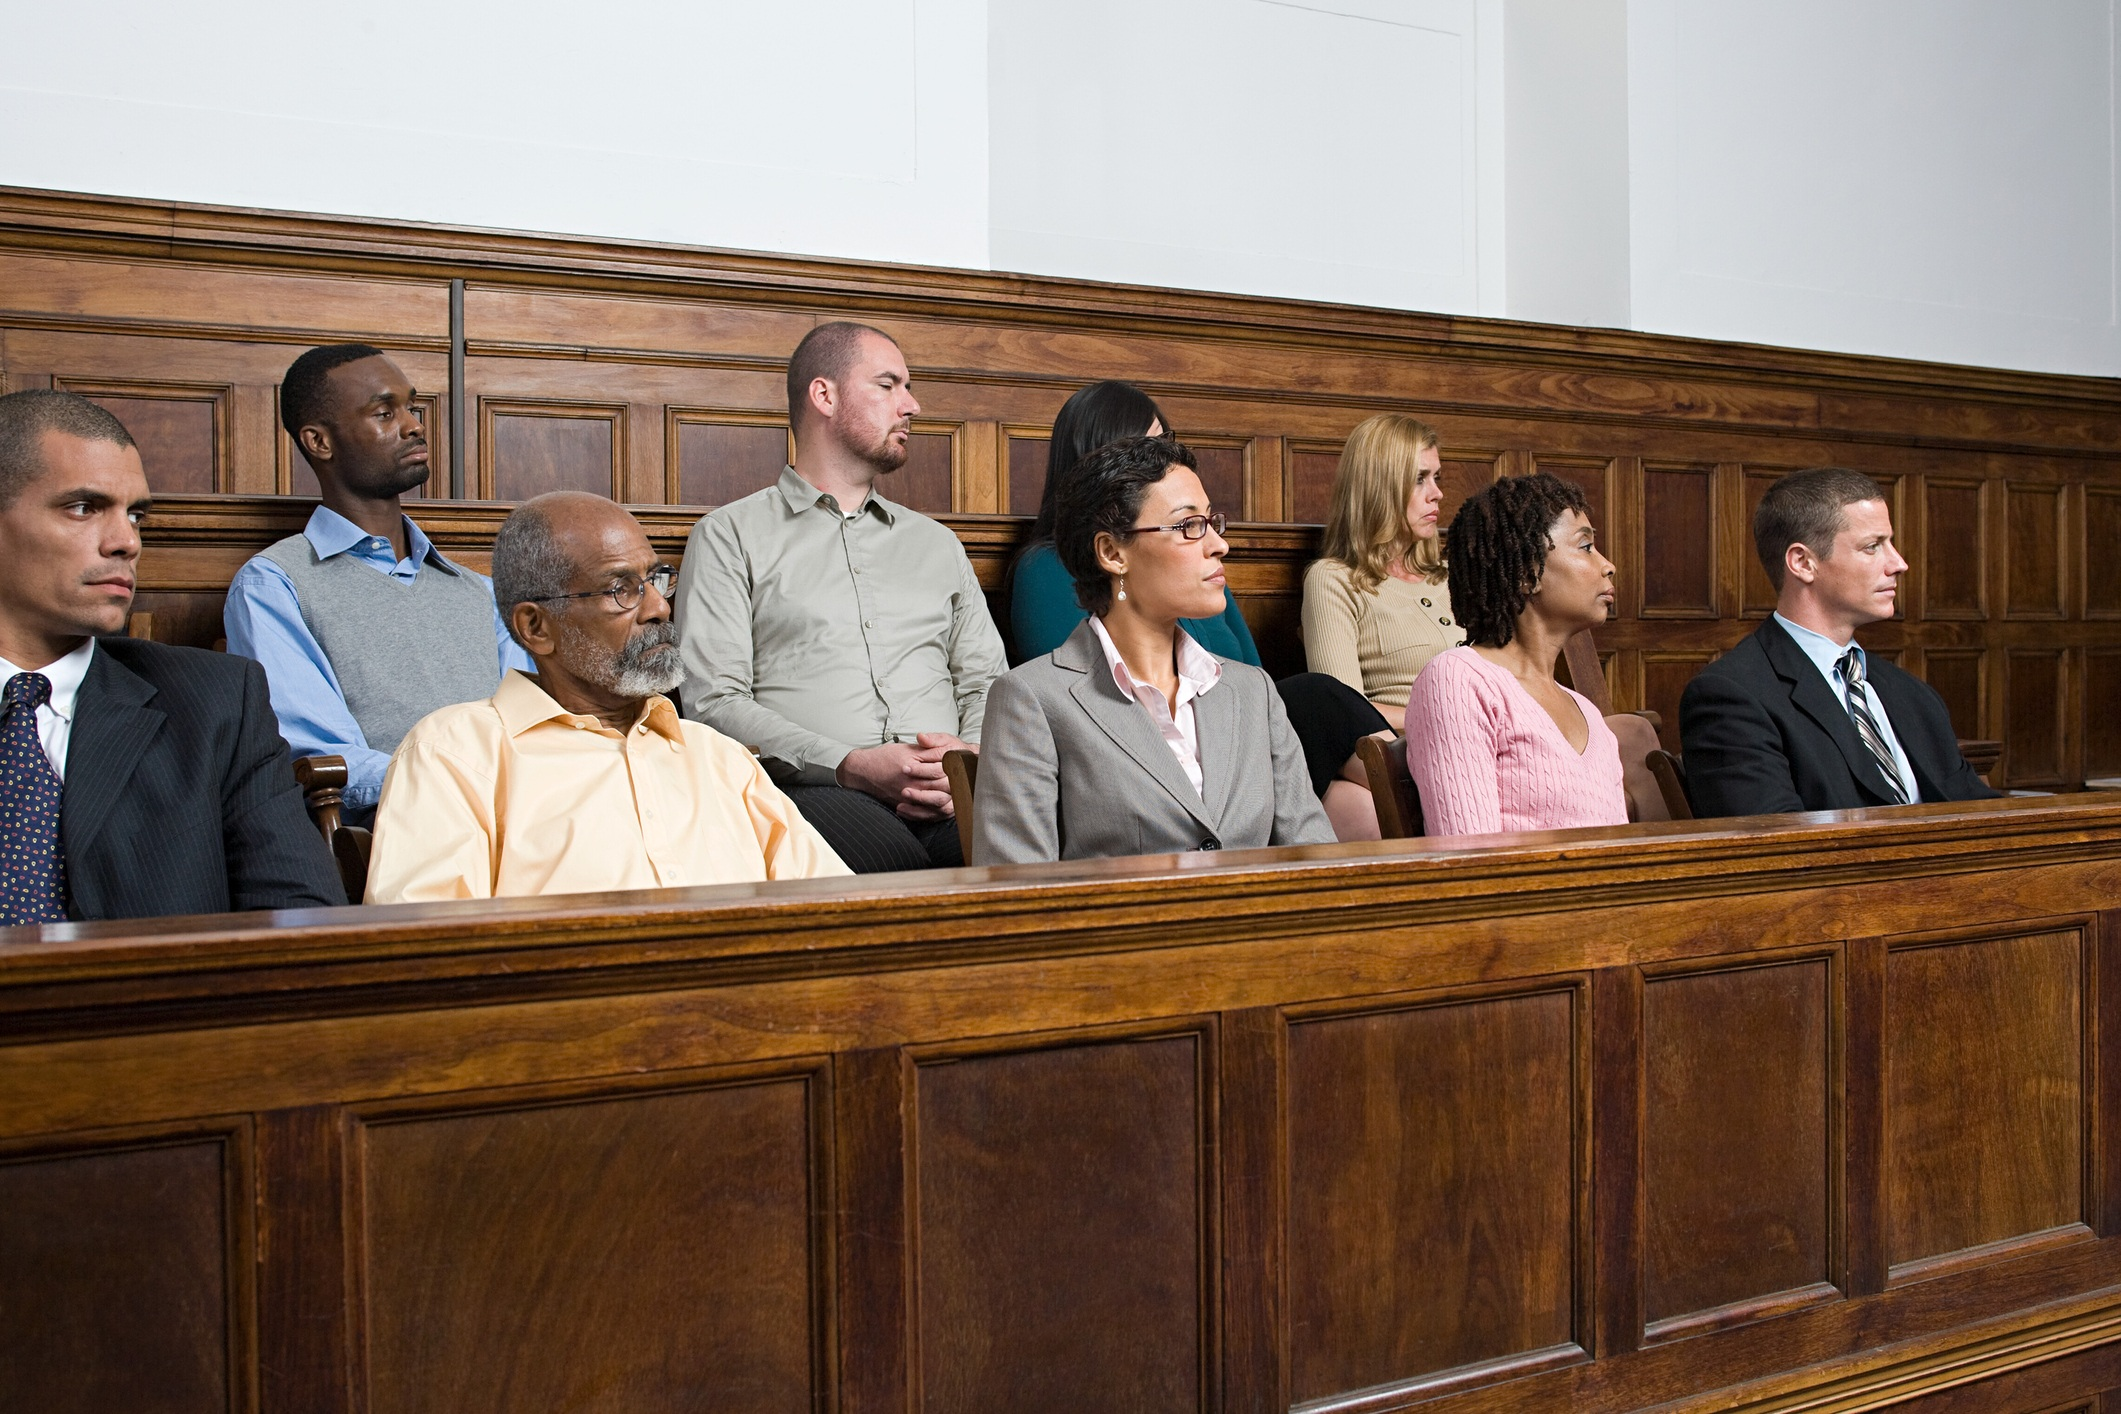 Jurors during trial